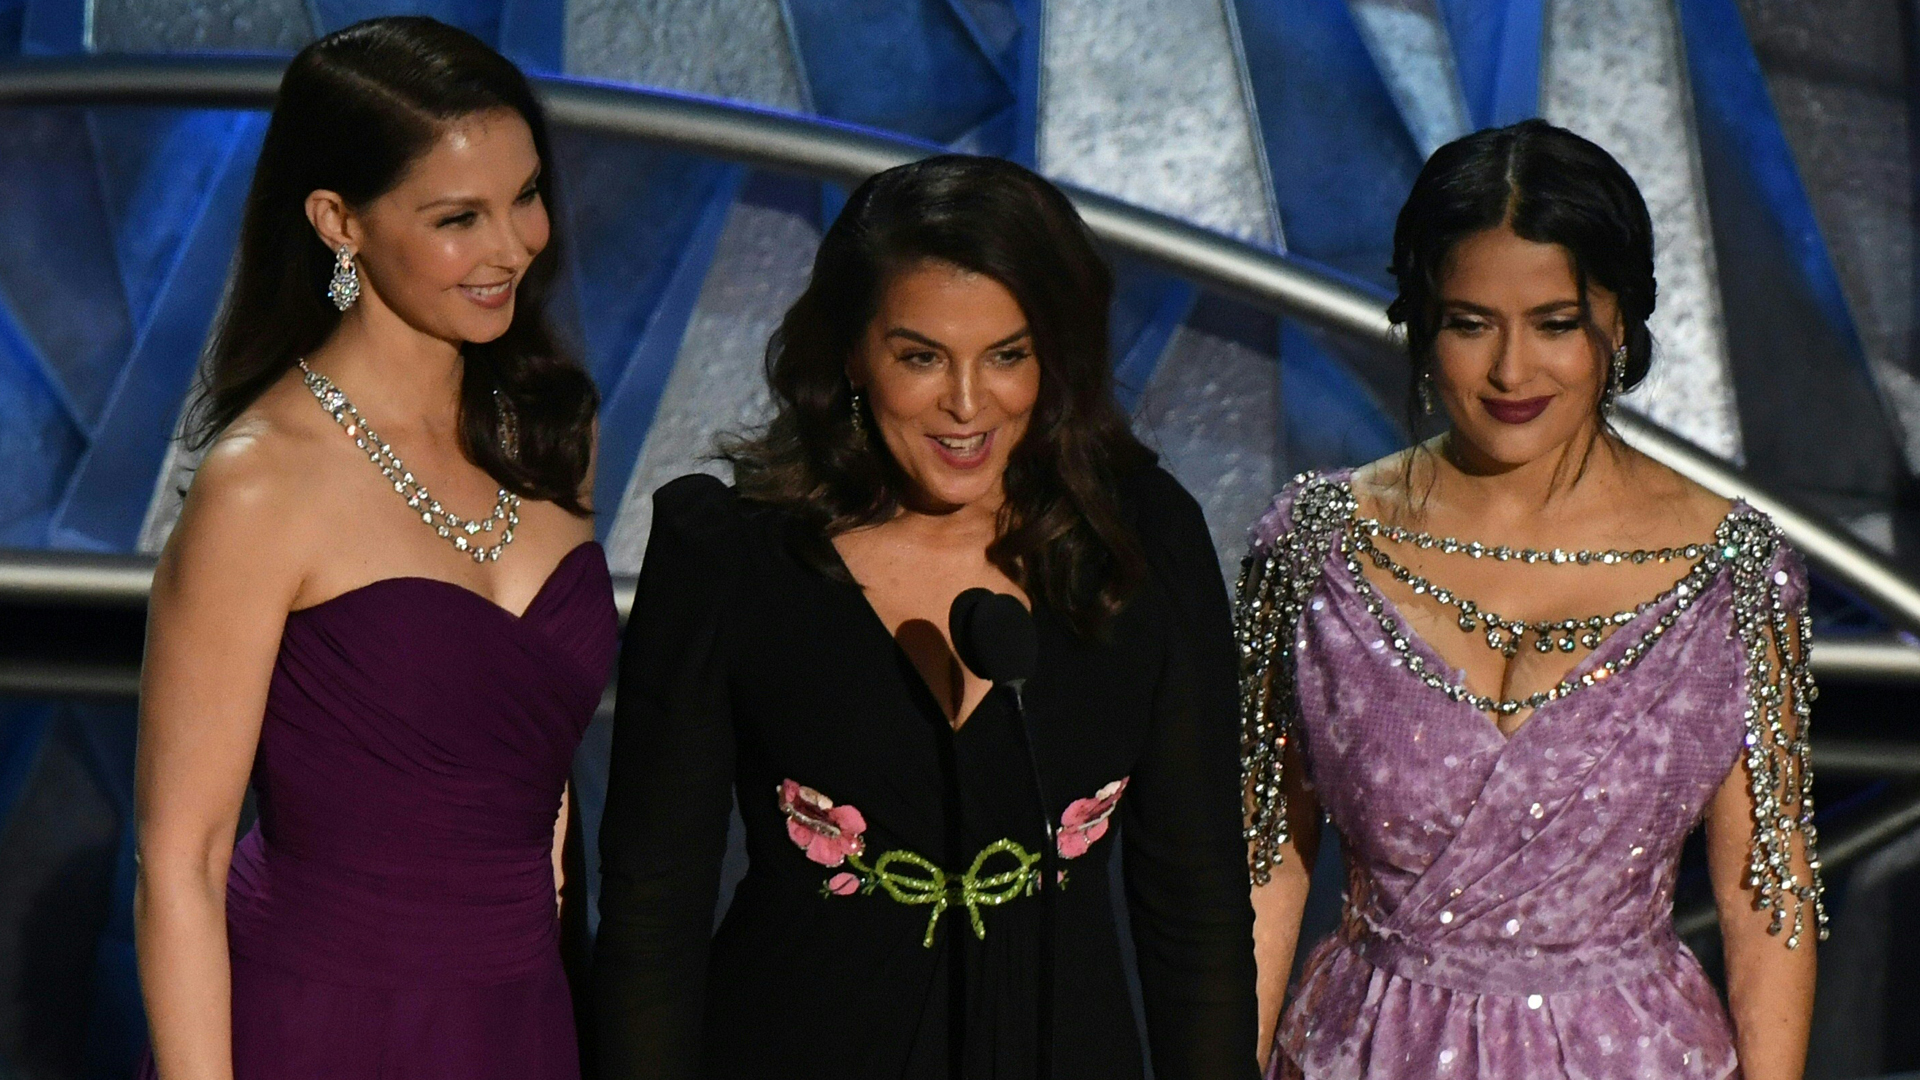 Actress Ashley Judd, Italian-American actress Annabella Sciorra and Mexican-Lebanese actress Salma Hayek deliver a speech about sexual harassment in the entertainment industry during the 90th Annual Academy Awards show on March 4, 2018, in Hollywood. (Credit: Mark Ralston/AFP/Getty Images)